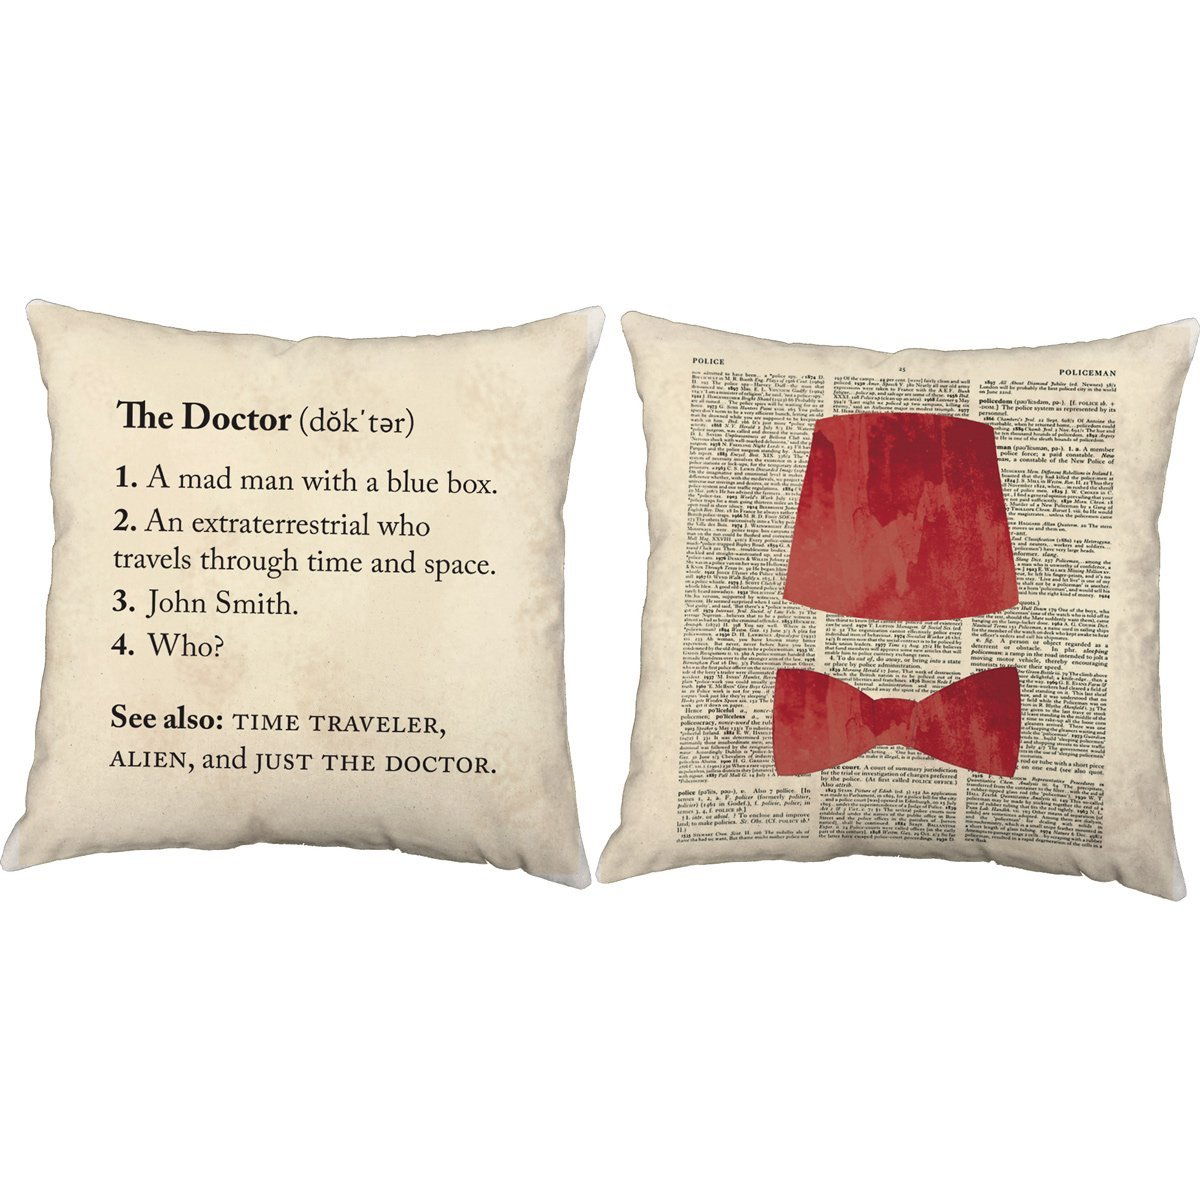 Amazing Set Of 2 Definition Of Doctor Throw Pillows 14x14 Square White  Indoor Outdoor Fez And